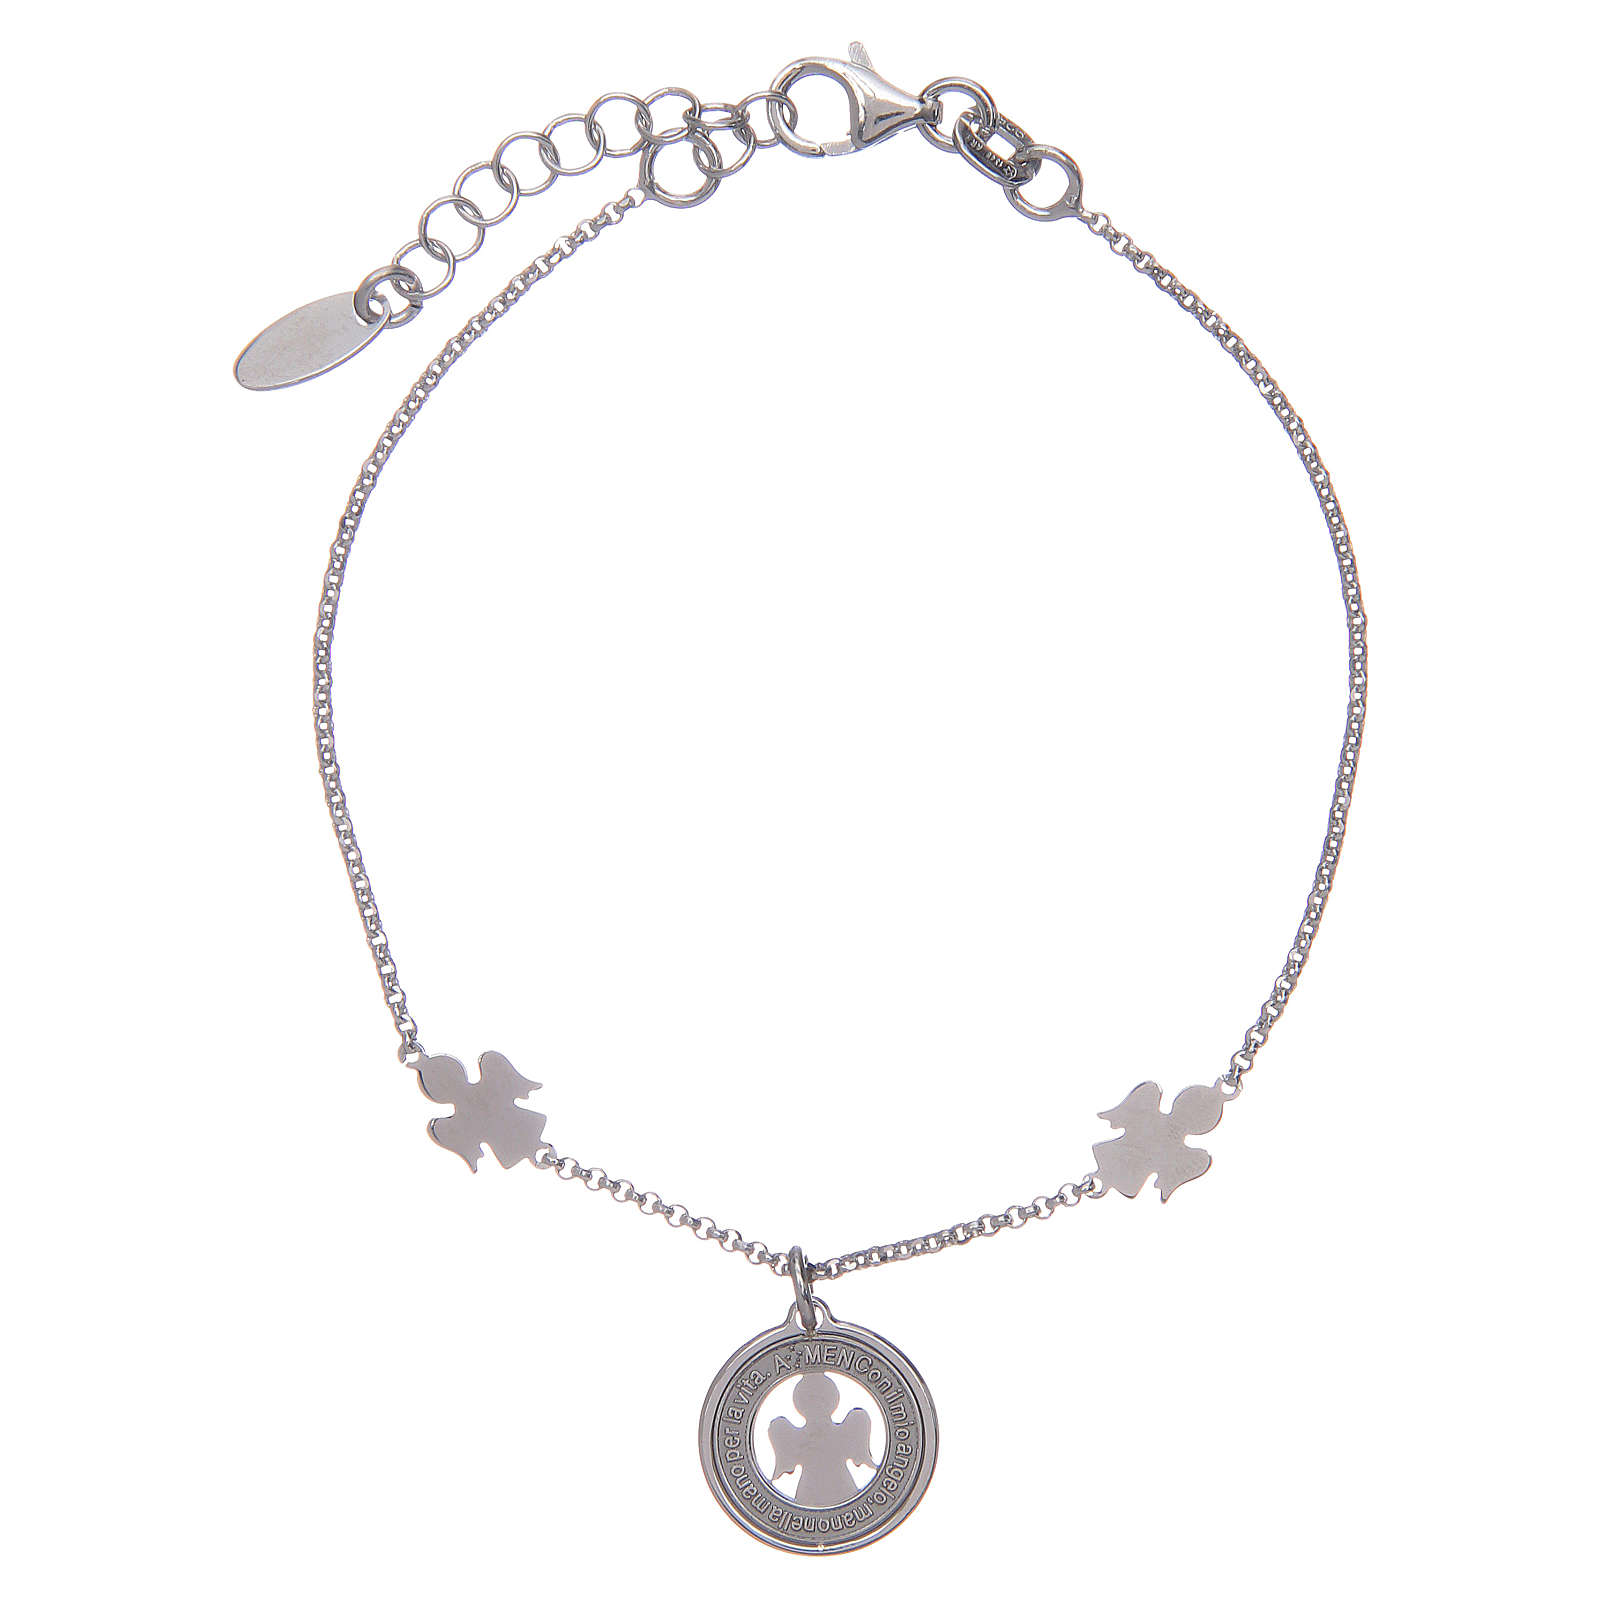 Amen bracelet in silver with angels and medal 4